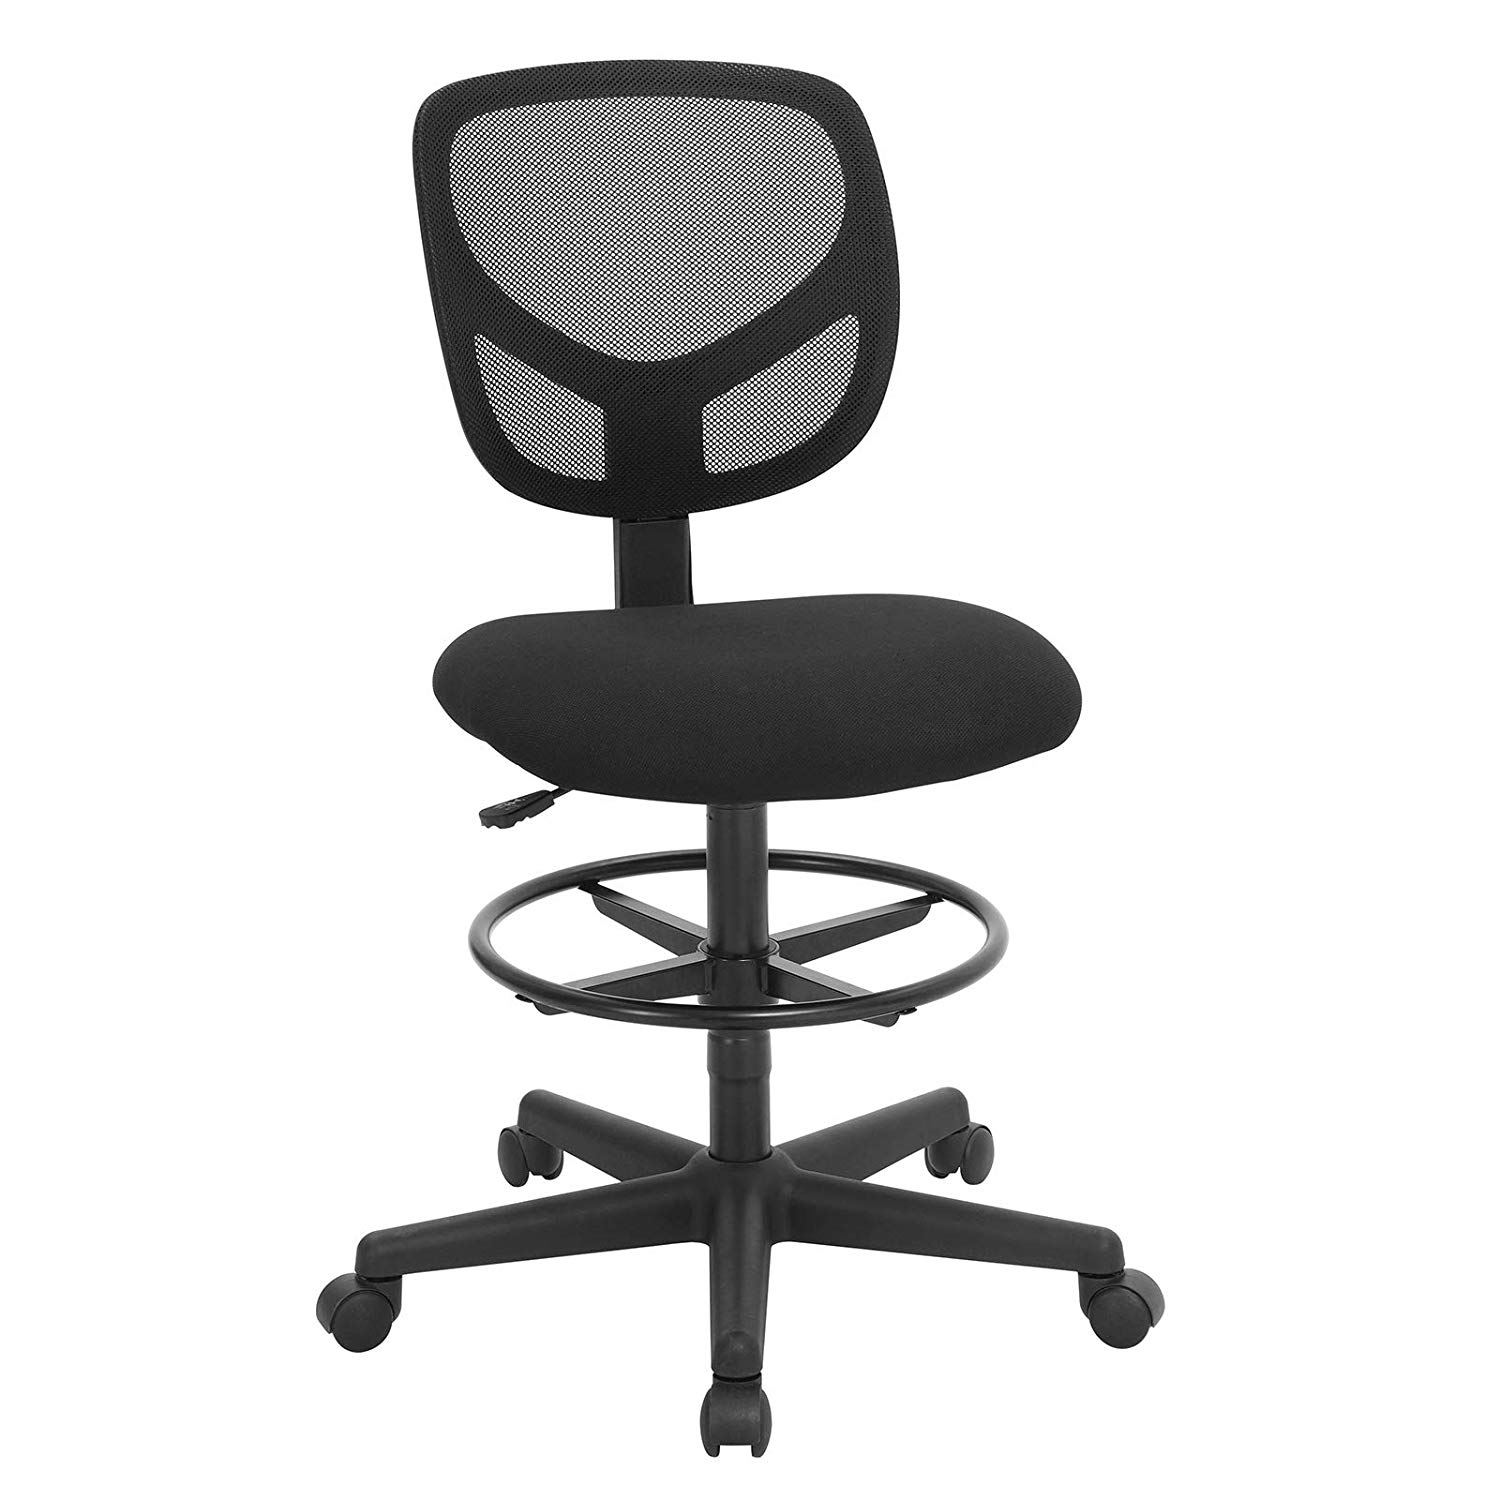 SONGMICS Mesh Drafting Stool Chair,Reception Office Desk Chair,Tall Standing Swivel Chair with Adjustable Foot Rest,Fabric Seat,Black,UOBN15BK